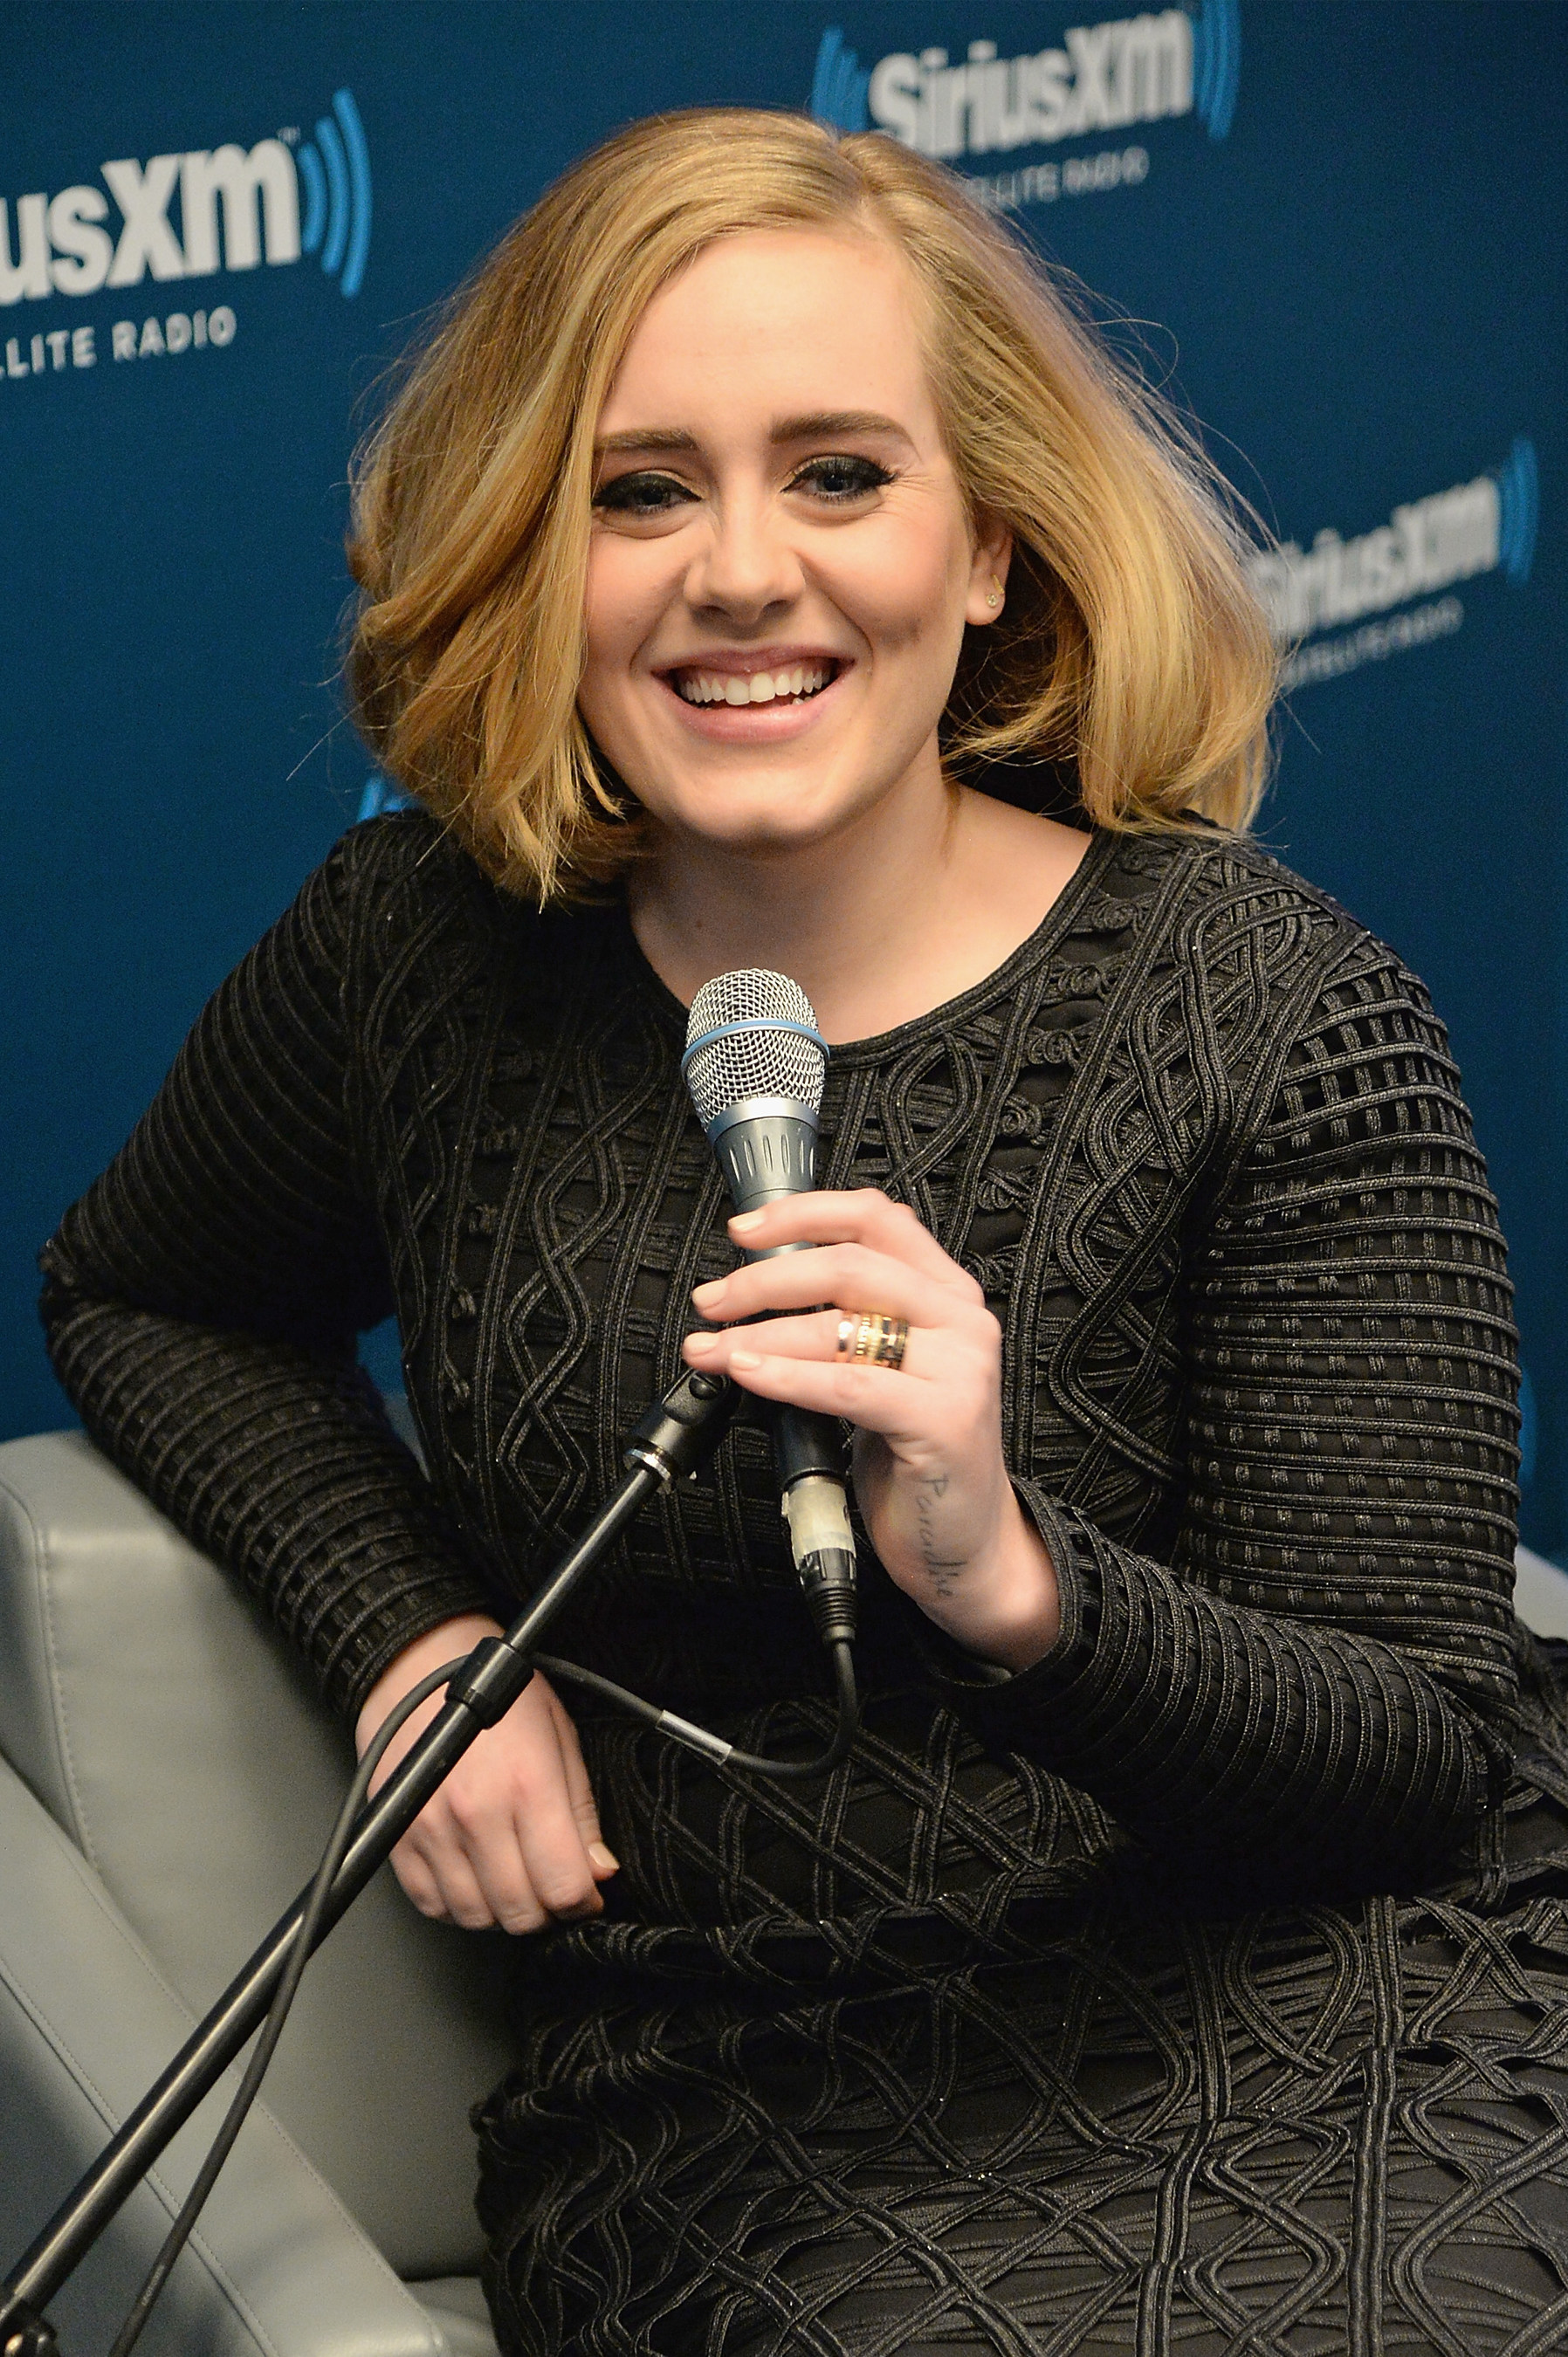 Adele Talks 25 on SiriusXM